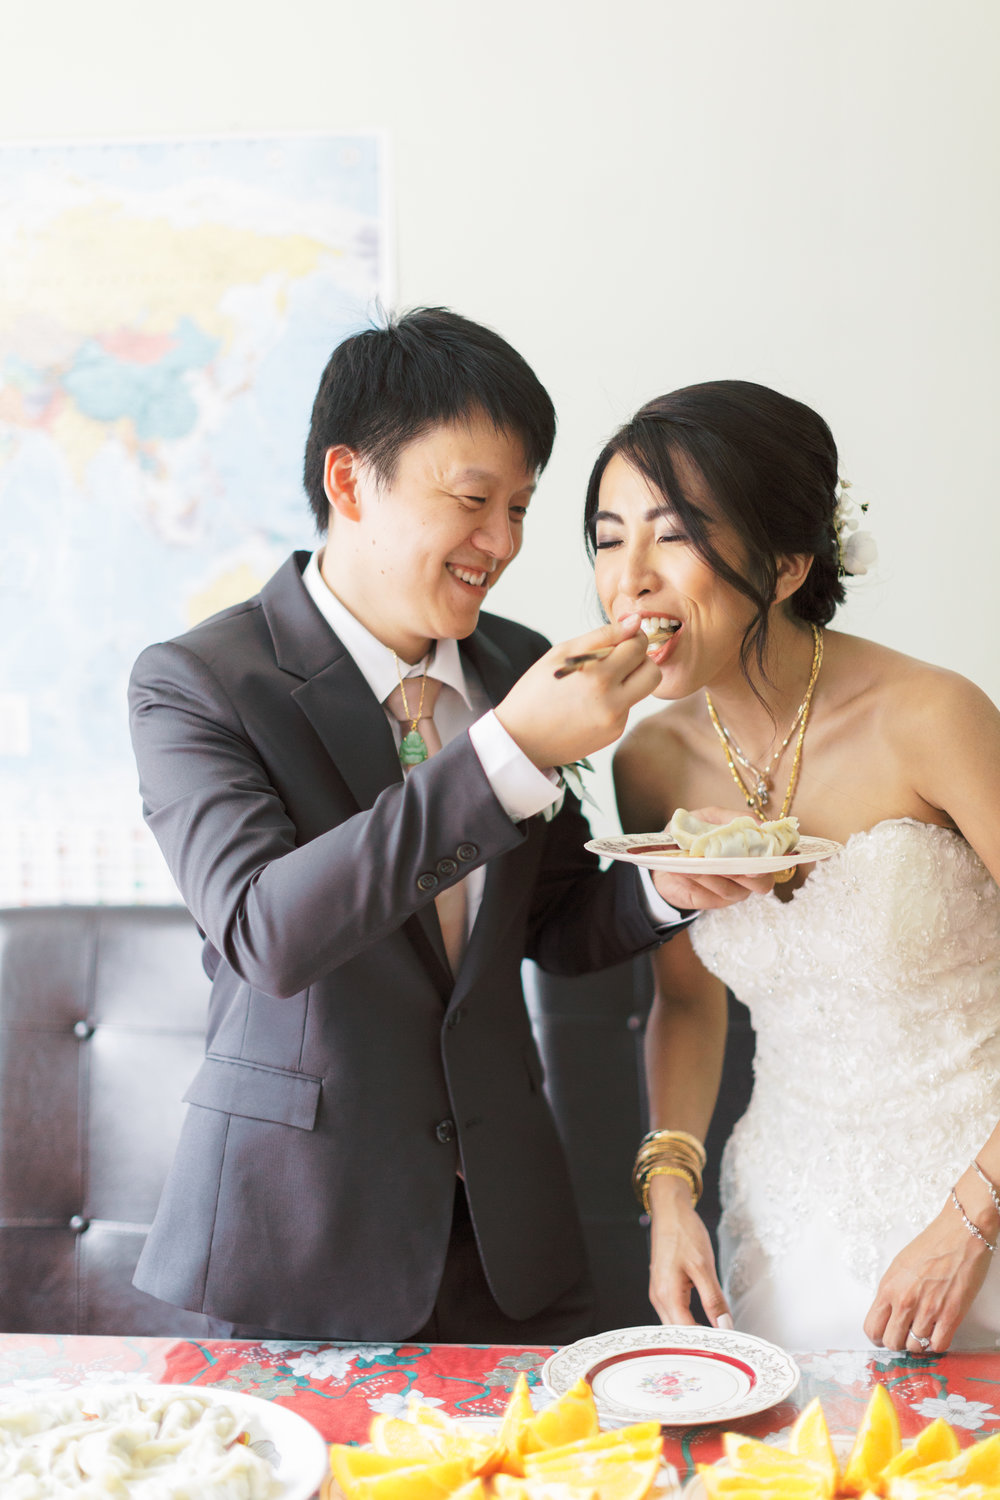 Markham Event Center Wedding-Groom Tea Ceremony-9.jpg